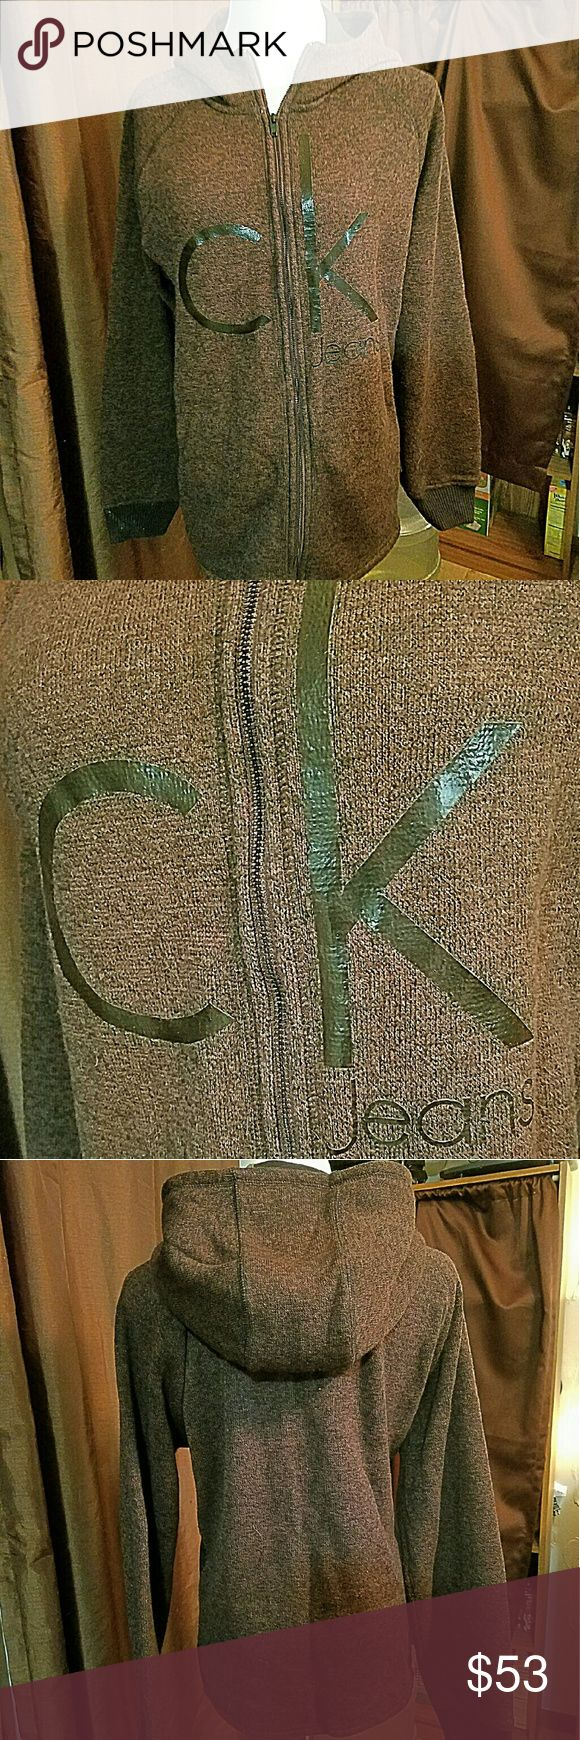 "CALVIN KLEIN ck Jeans Sz Large Textured Hoodie Brand: Calvin Klein Jeans  Item: *Mens ck Jeans Zip Up Hoodie *I have it Listed in Men's But Ladies Could Certainly Wear As Well - See Measurements *The Color is Very Hard to Describe - Kind of a Rusty Maroon Brown *Says ck Jeans on Front *Raglan Sleeves *Black Panels on Each Side *Pockets on Each Side for Hands *Very Good to Excellent Pre-Loved Condition  Armpit to Armpit (flat) - 23"" Shoulder to Hem - 27""  *no trades, offers via offer button…"